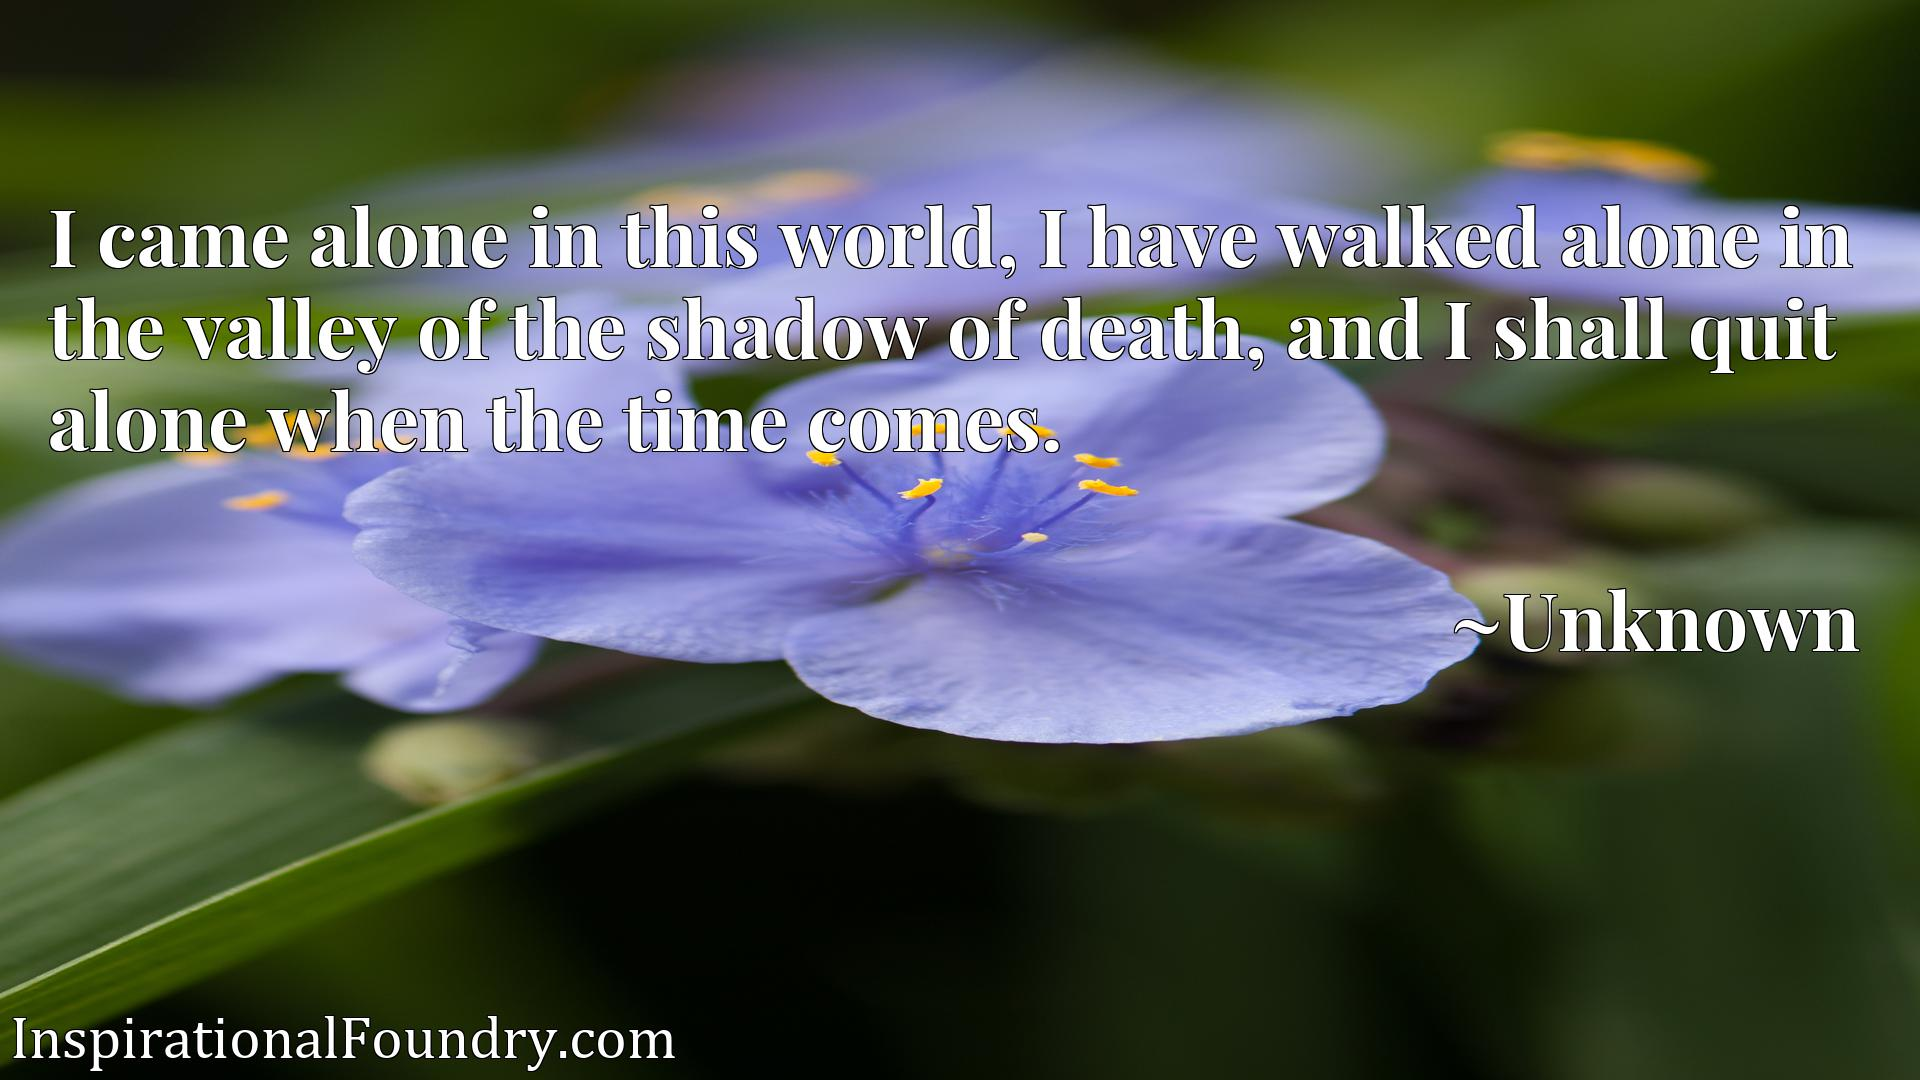 Quote Picture :I came alone in this world, I have walked alone in the valley of the shadow of death, and I shall quit alone when the time comes.